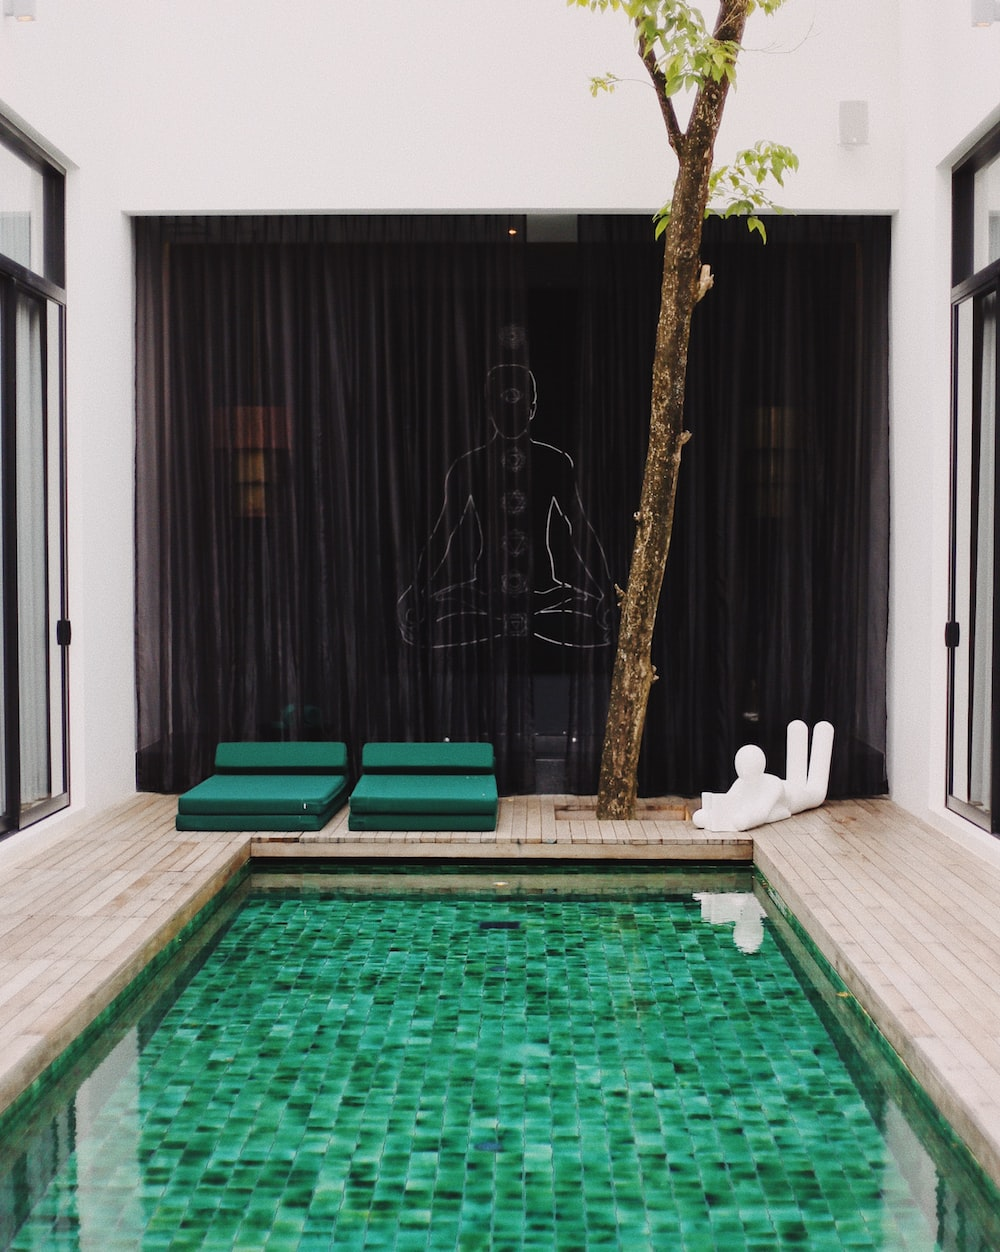 multicolored pool in room